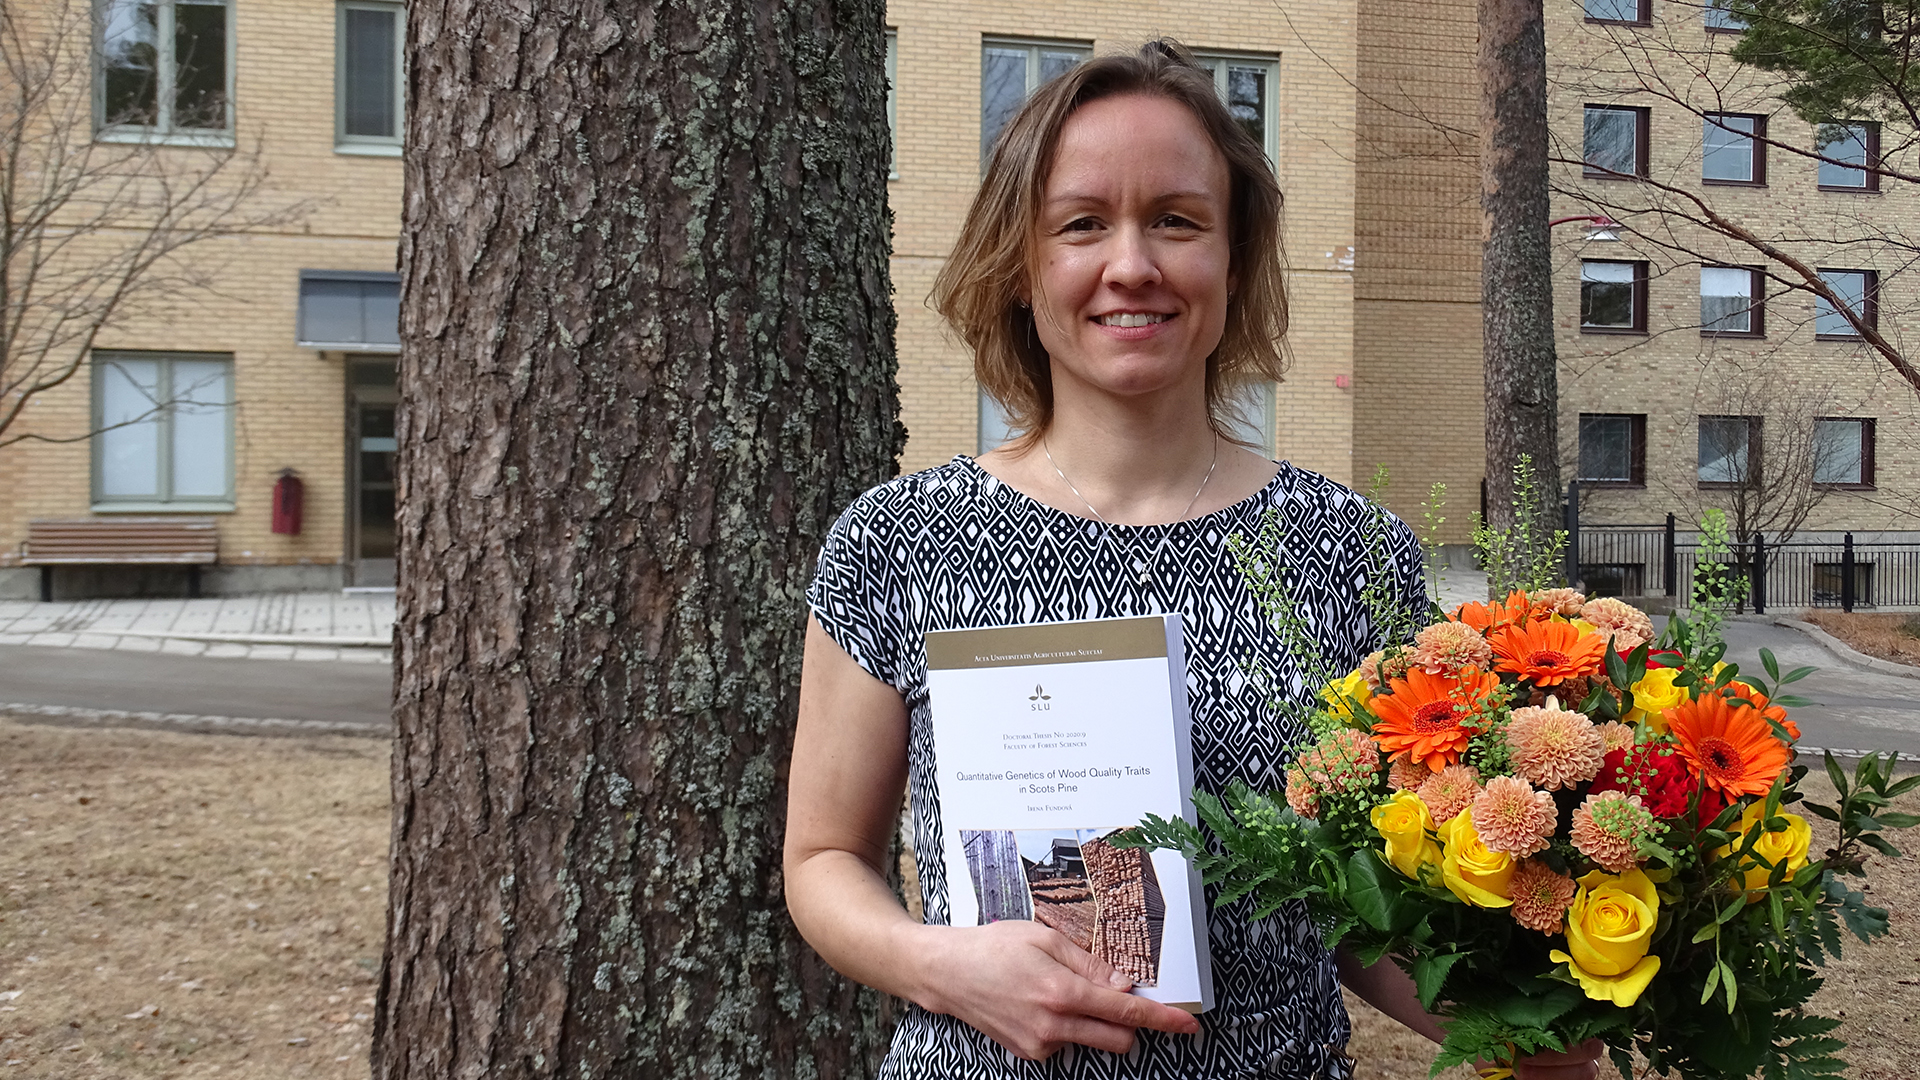 Irena Fundová successfully defended her PhD thesis at SLU